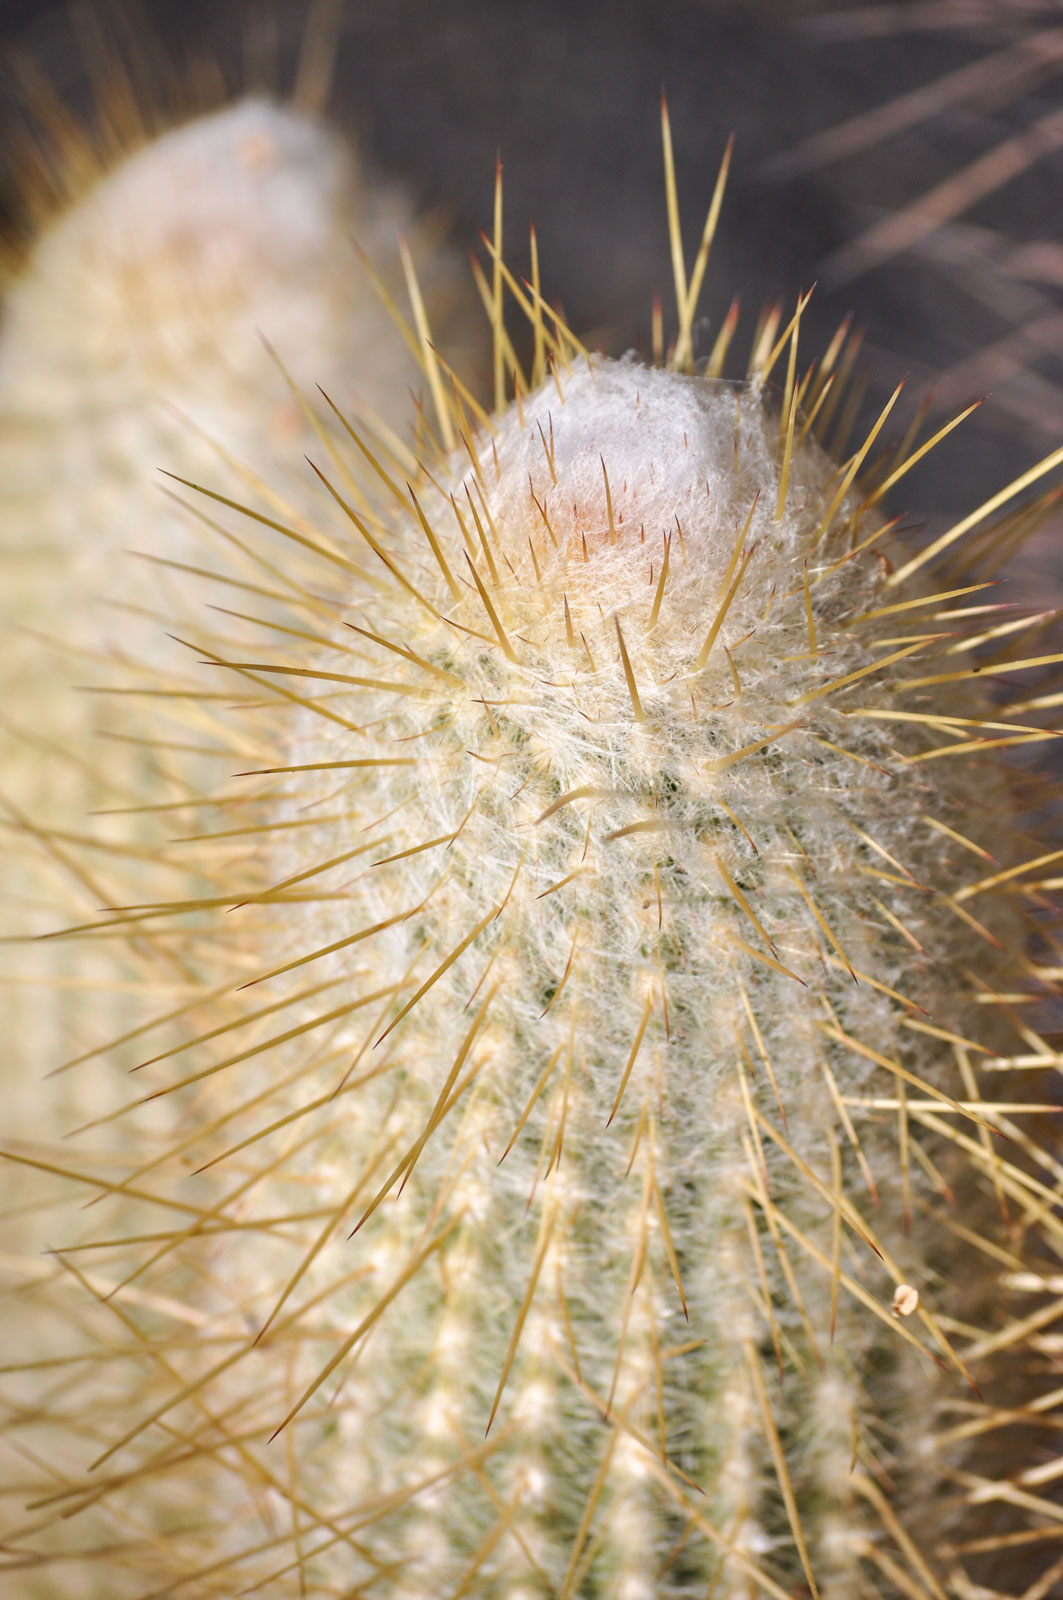 A close-up of the top of an Old Lady Cactus. The gold spines stick out from under a white fuzzy-like cap.